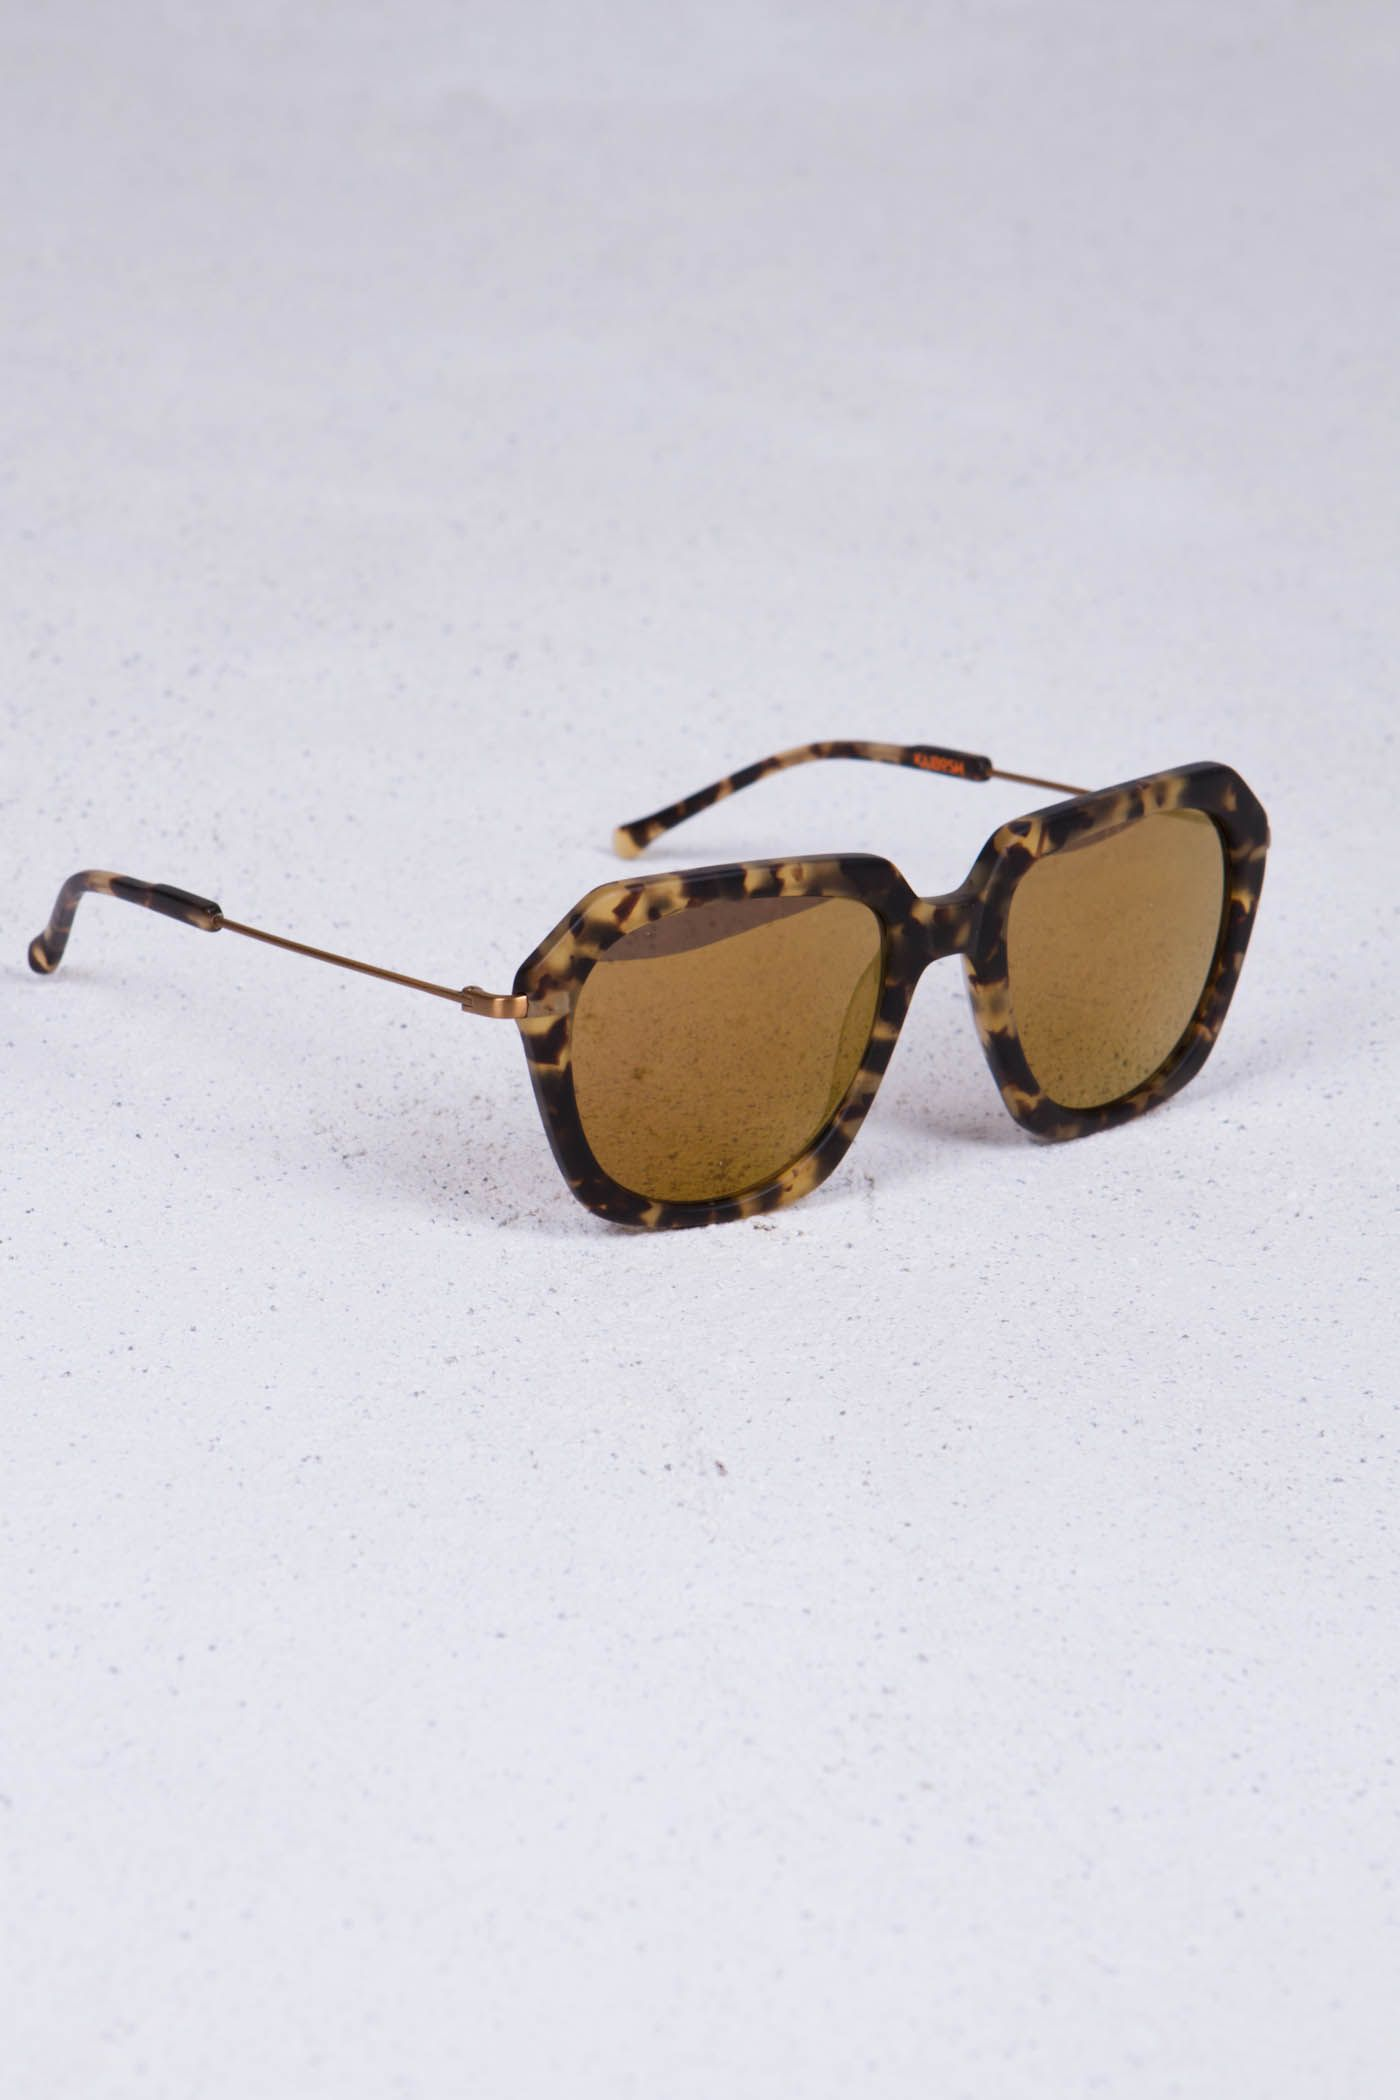 Charlie's Girl sunglasses by Norwegian brand Kaibosh︱Tortoise acetate frame︱Brown sun lens with gold mirror coating︱See more at www.grandpa.se